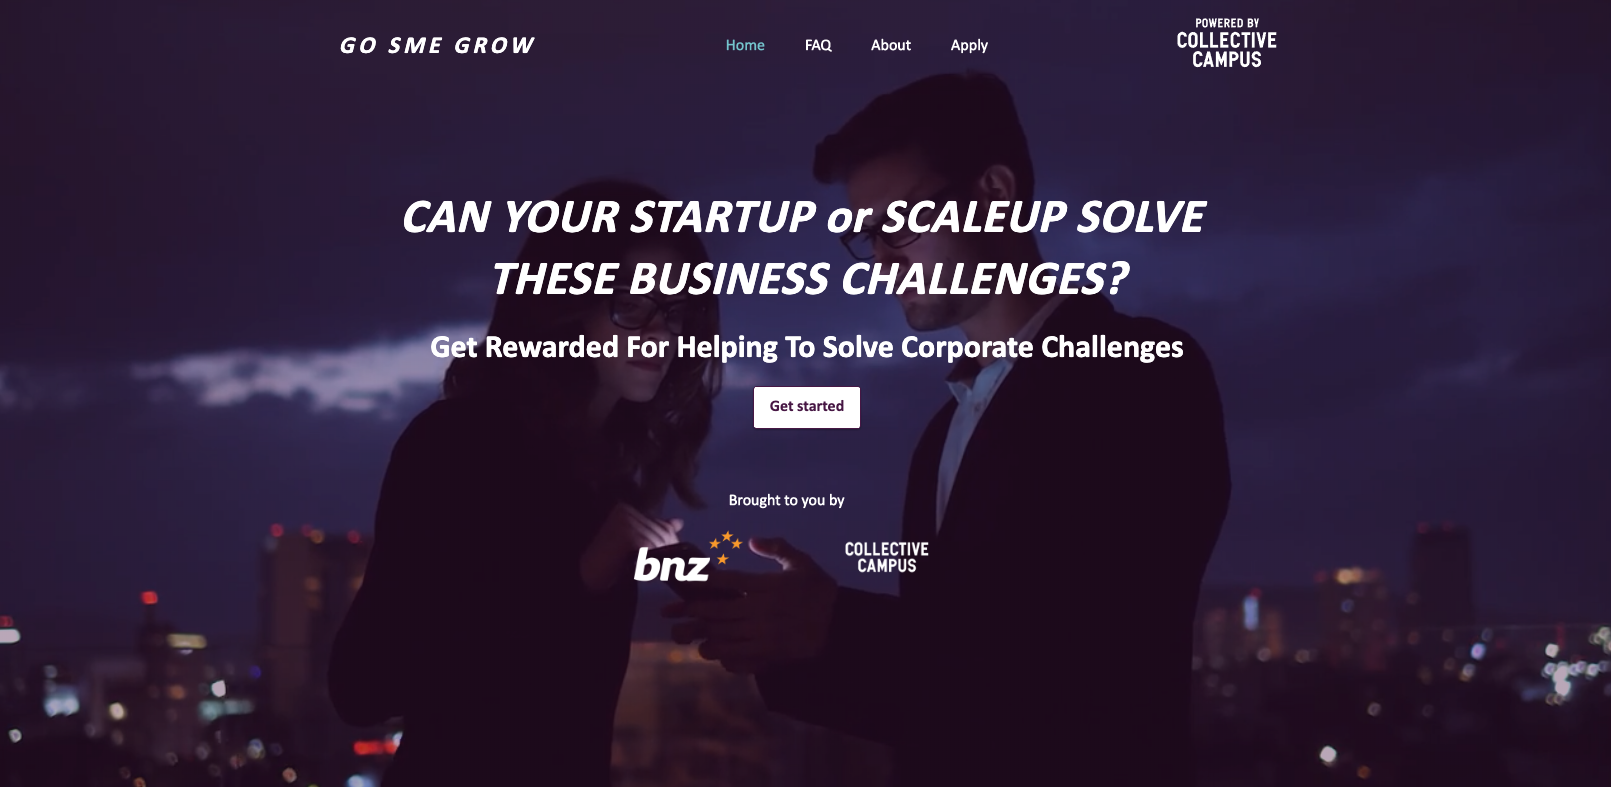 Go SME Grow program website